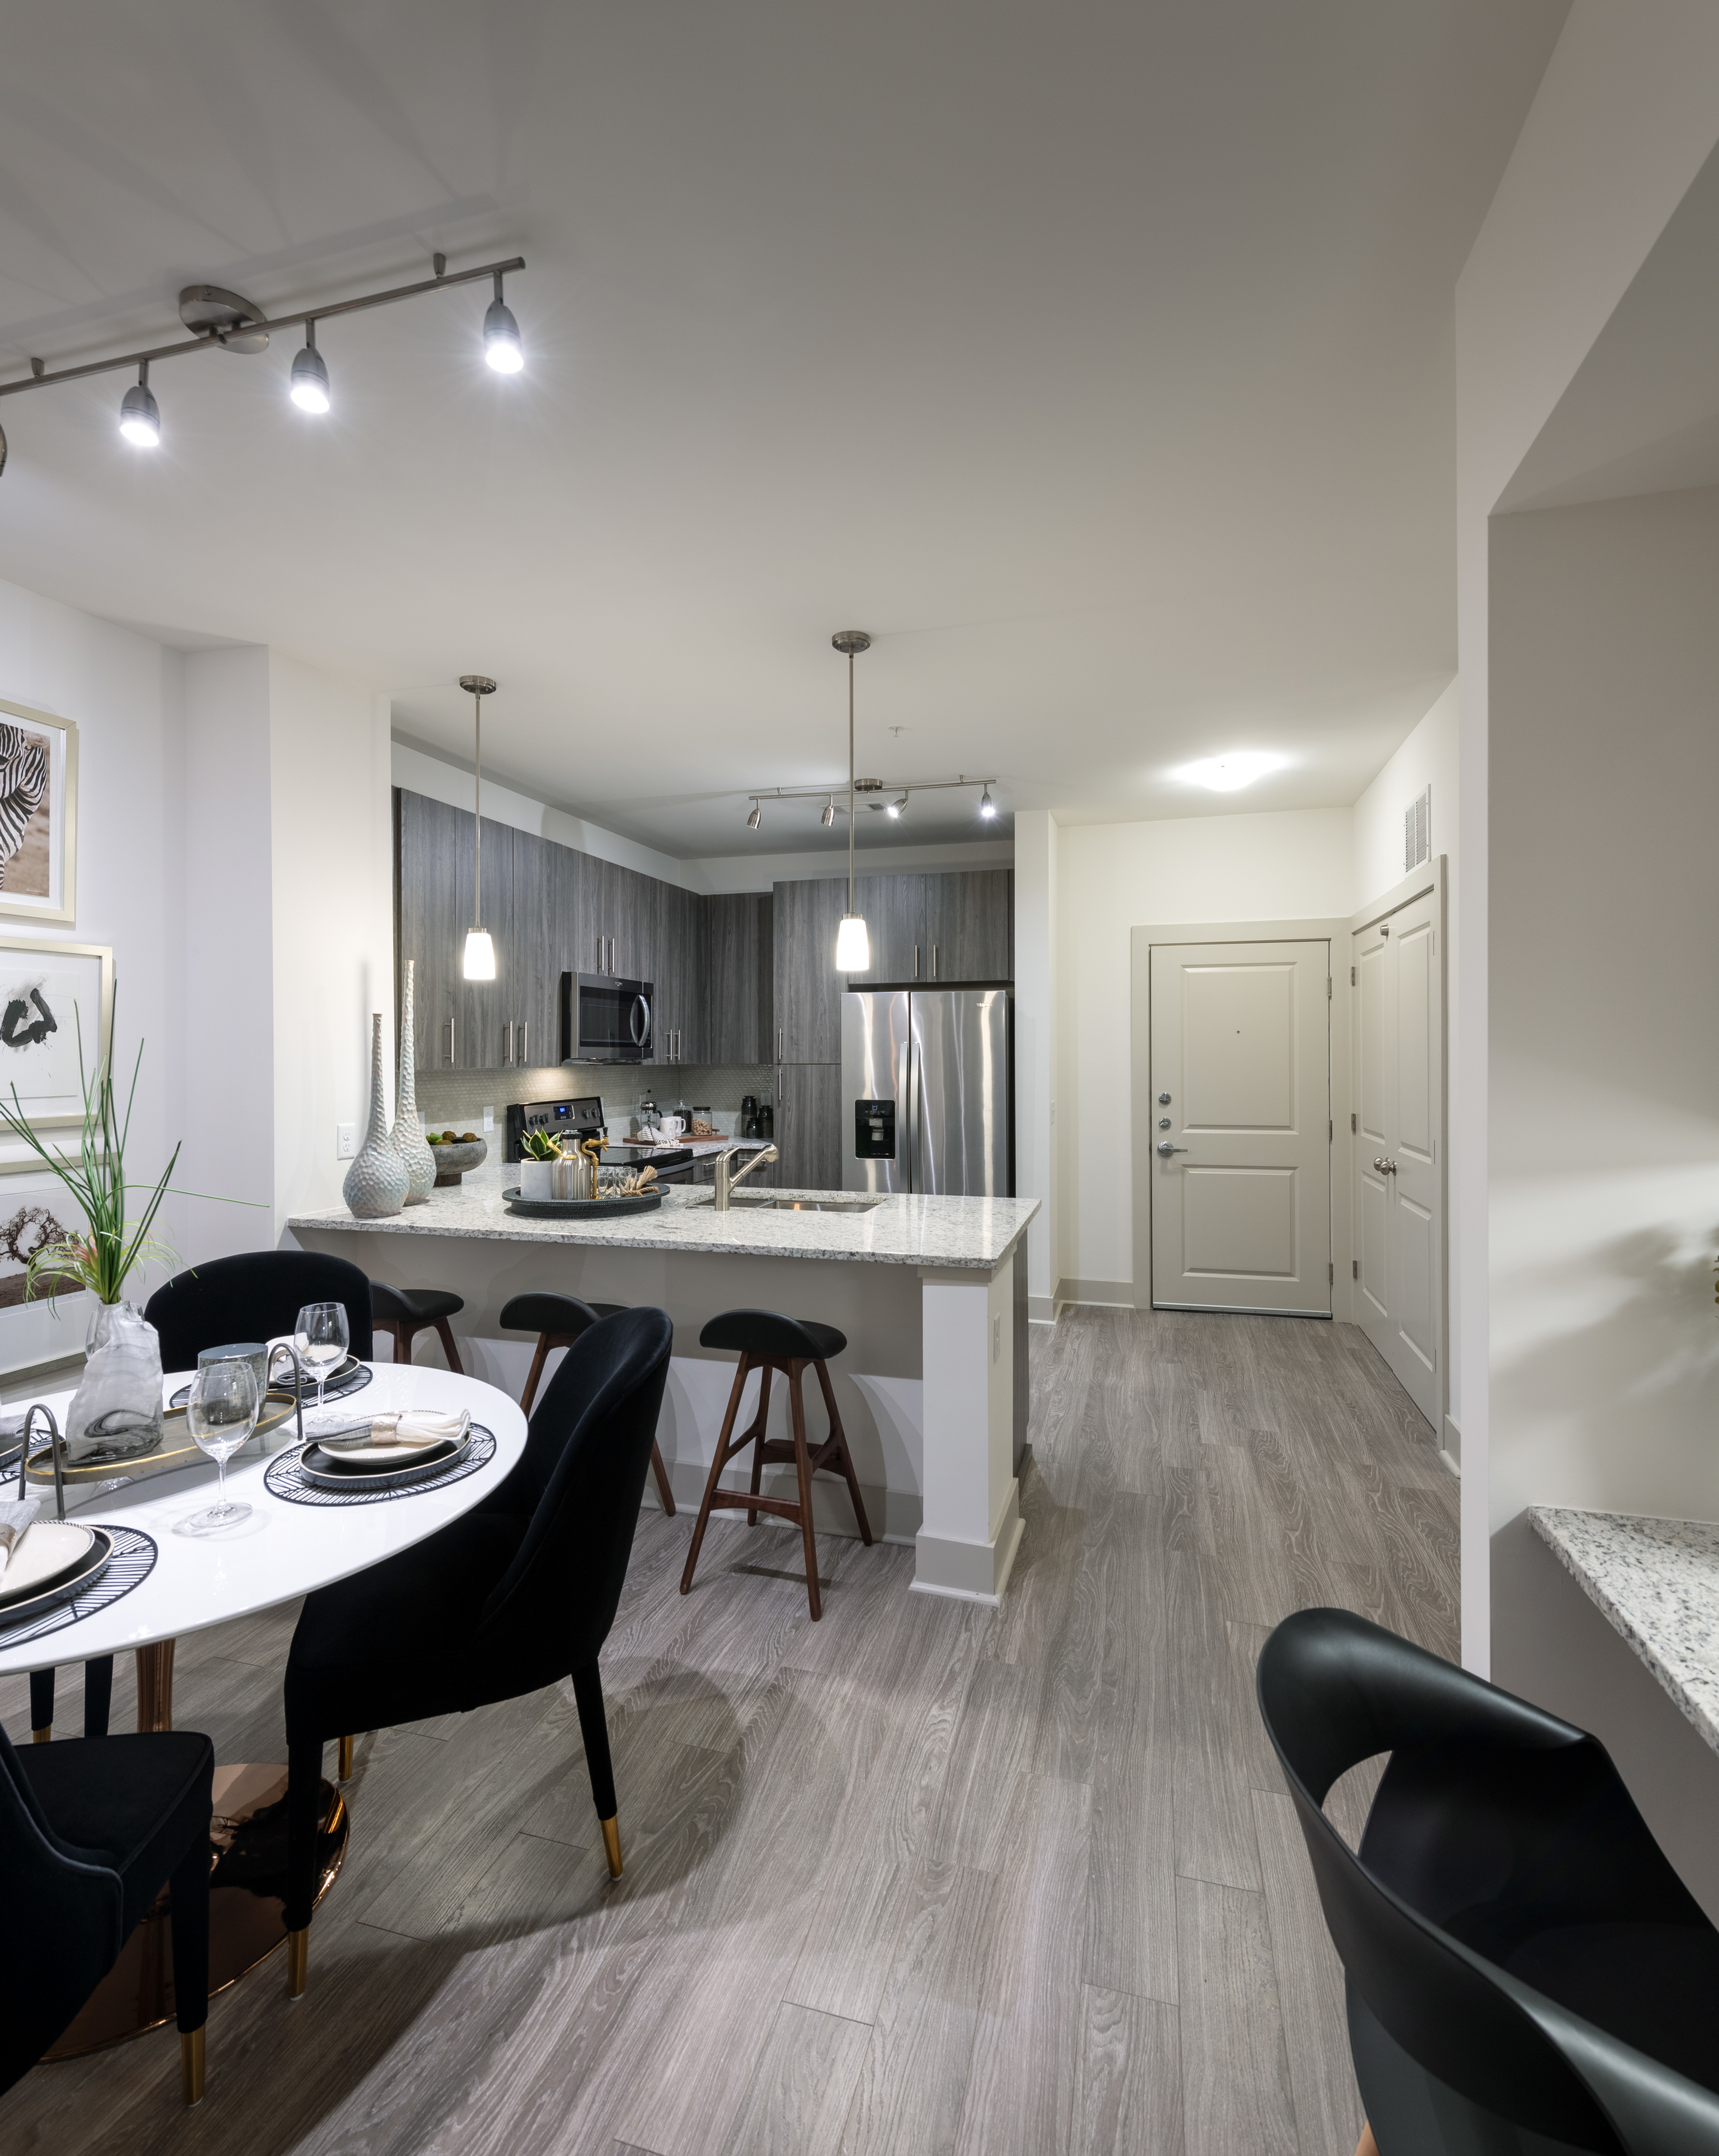 Image of Gourmet chef kitchens with stainless steel appliances for Hanover Westford Valley